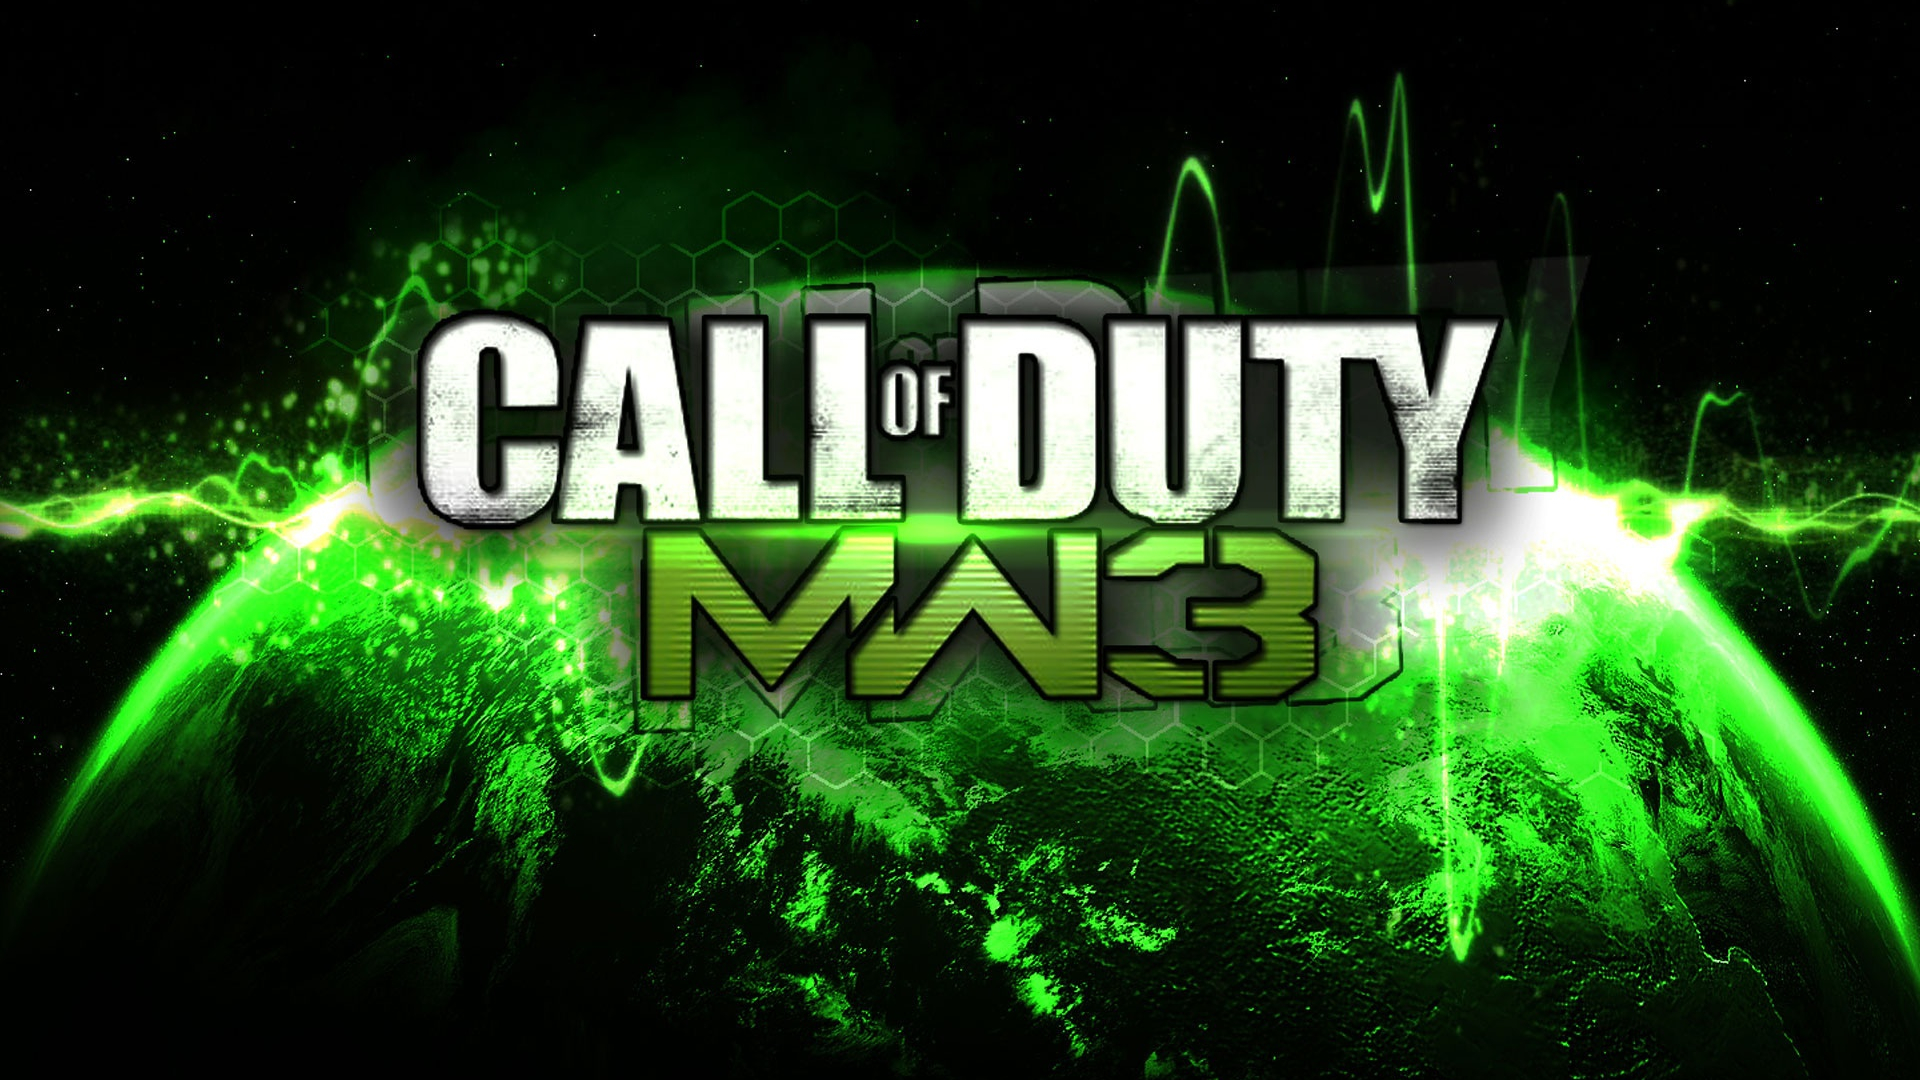 Free Download Download Awesome Call Of Duty Modern Warfare 3 Fanart Wallpaper Full 1920x1200 For Your Desktop Mobile Tablet Explore 47 Awesome Call Of Duty Wallpapers Call Of Duty Desktop Wallpaper